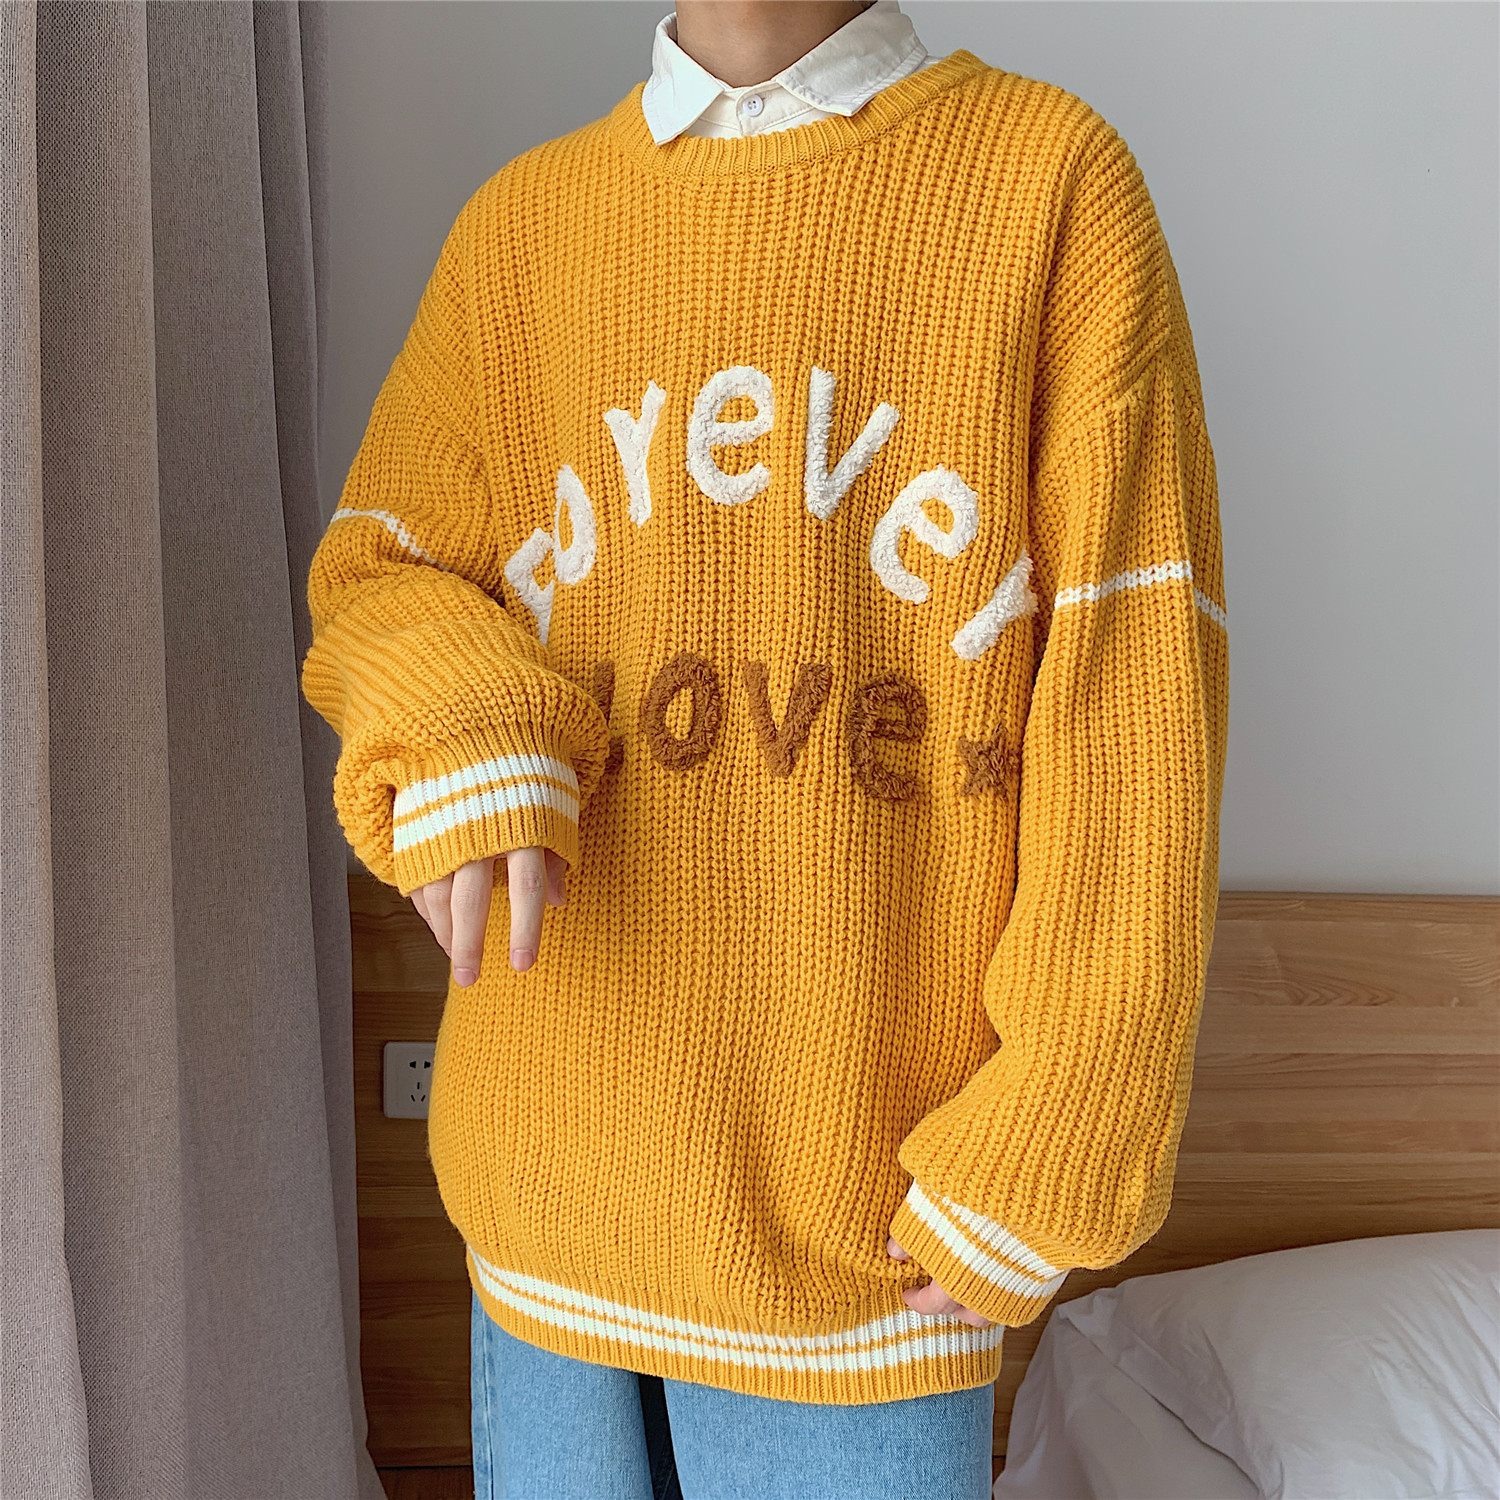 2019 Winter Men's In Warm Coats Cashmere Woolen Sweaters Pullover Casual Brand Fashion Loose Male Knitting Big Size M-5XL